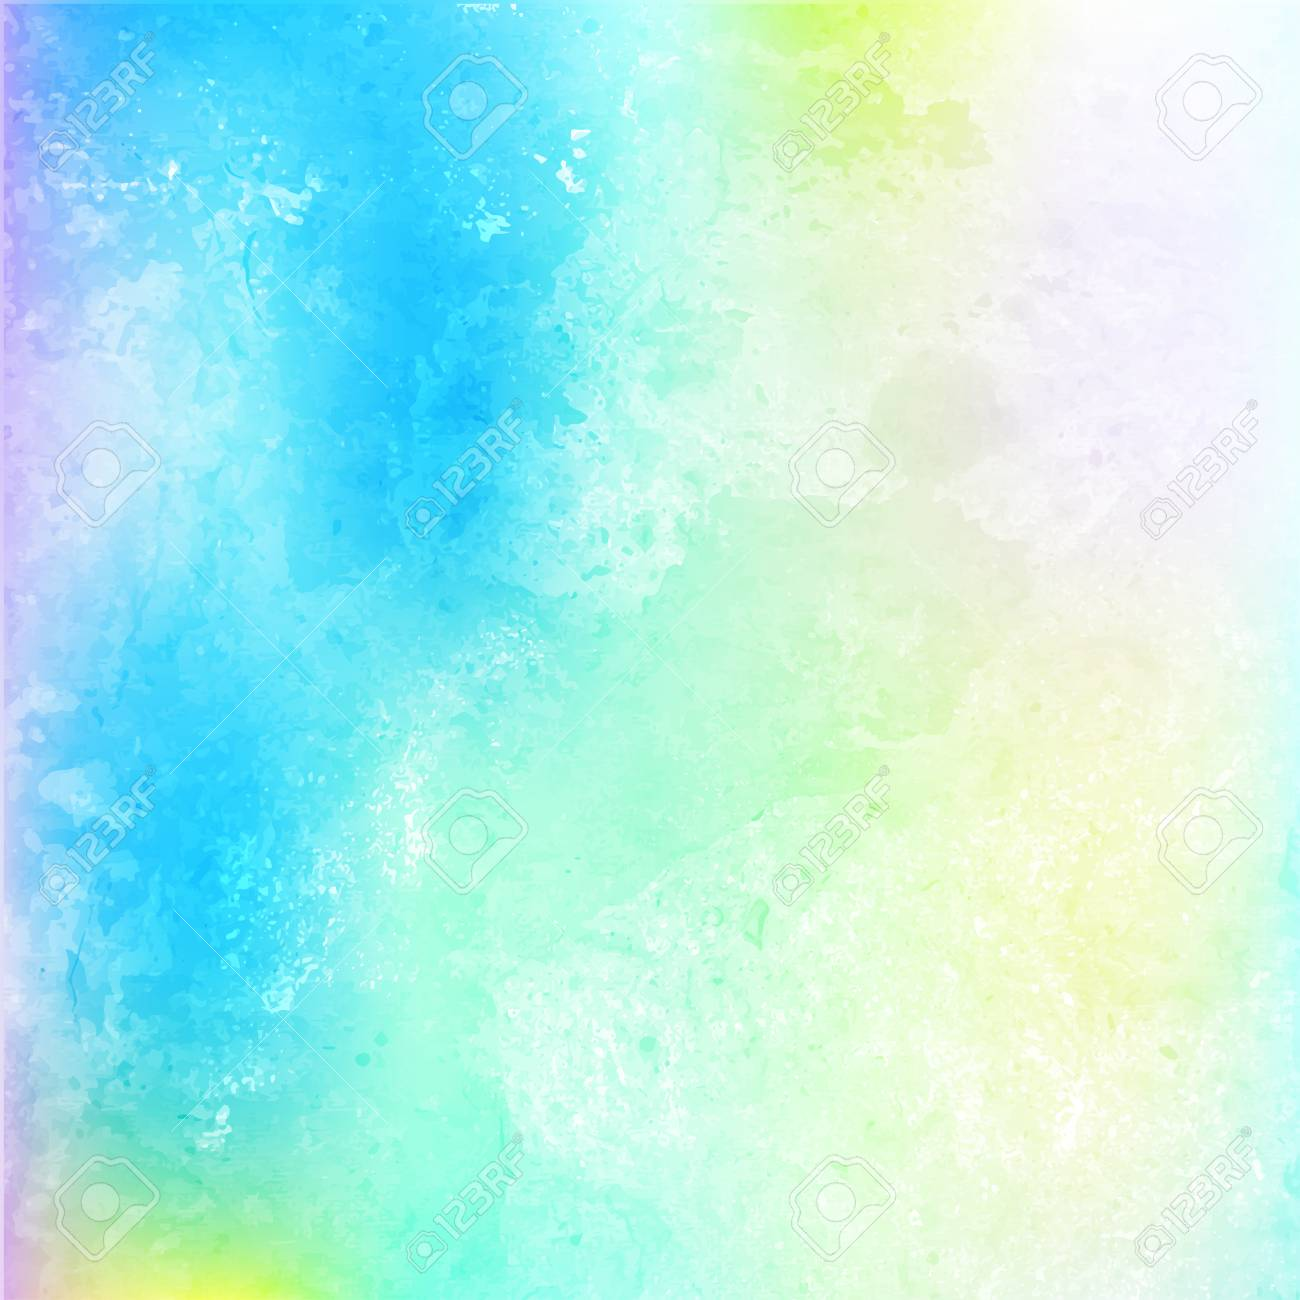 Blue Vector Clouds Background In Watercolor Style Abstract Design Pastel Spring Tones